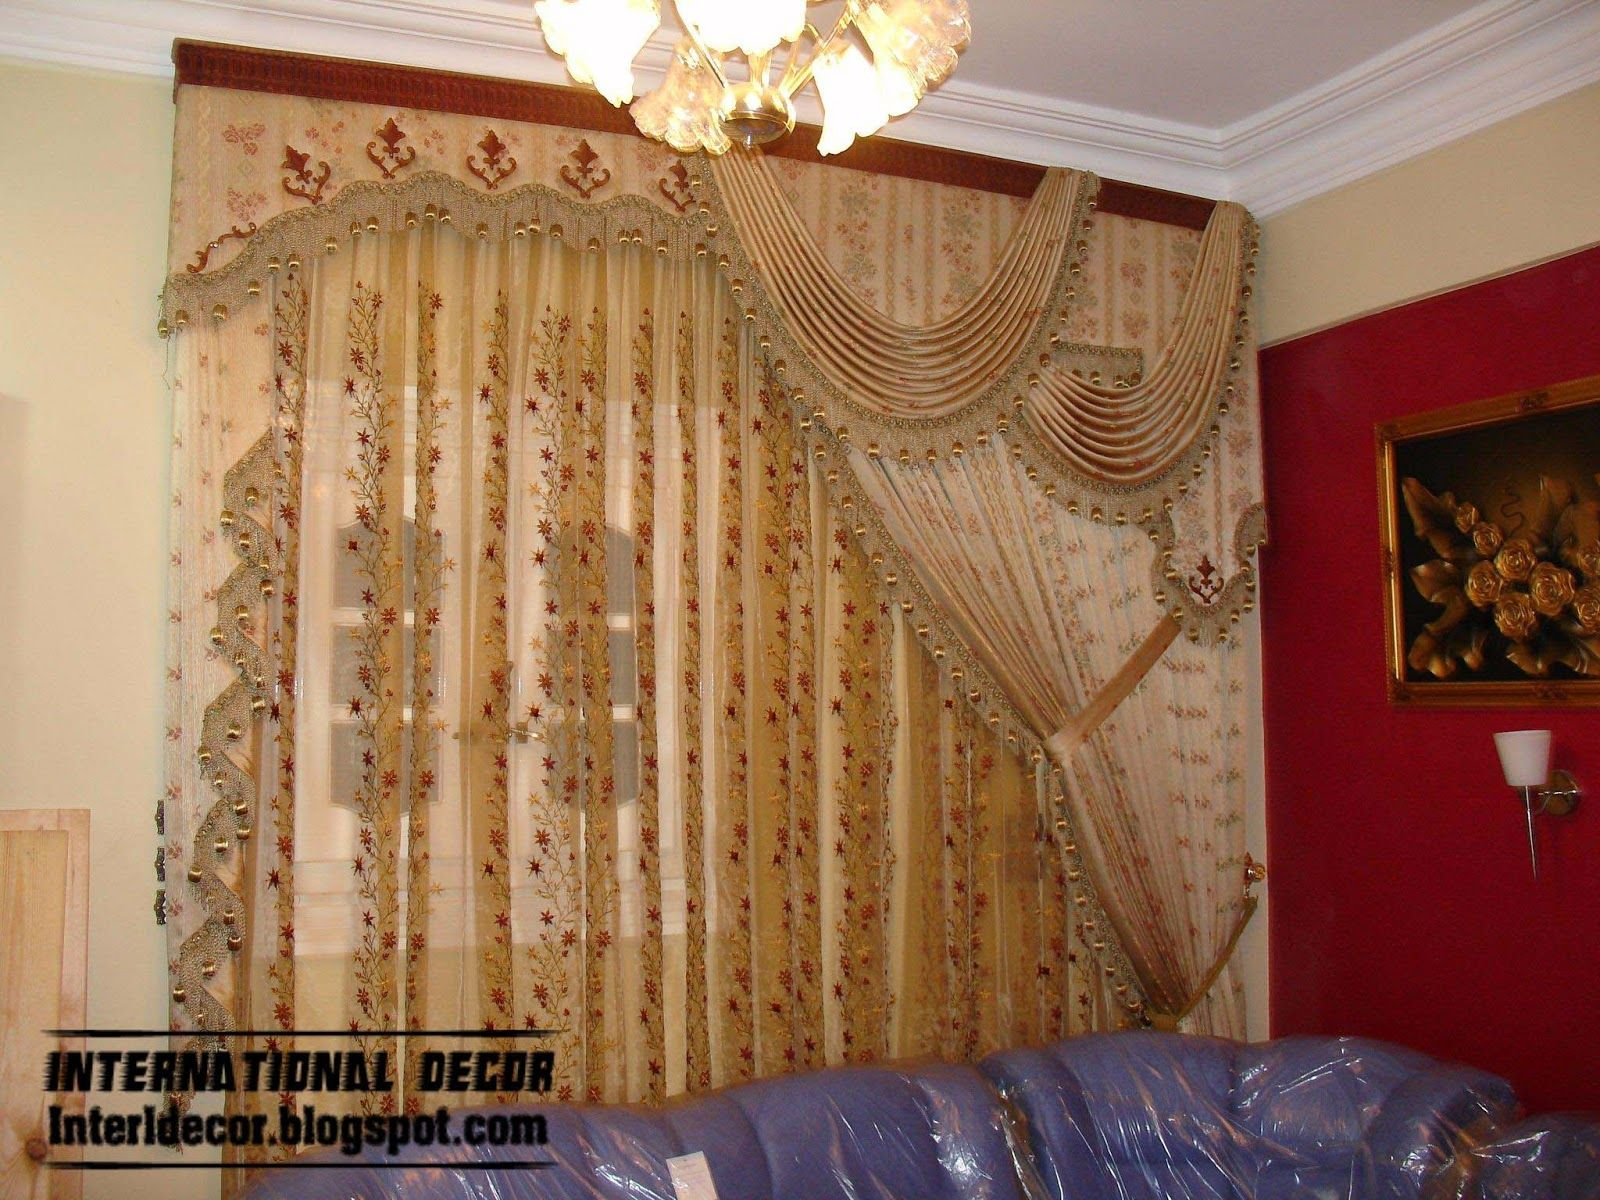 luxury living room curtains. Living Room Drape Design Ideas Styles Of Curtains And Drapes Top Catalog Luxury  Curtain Designs For The size of your modern living room and its window will help you